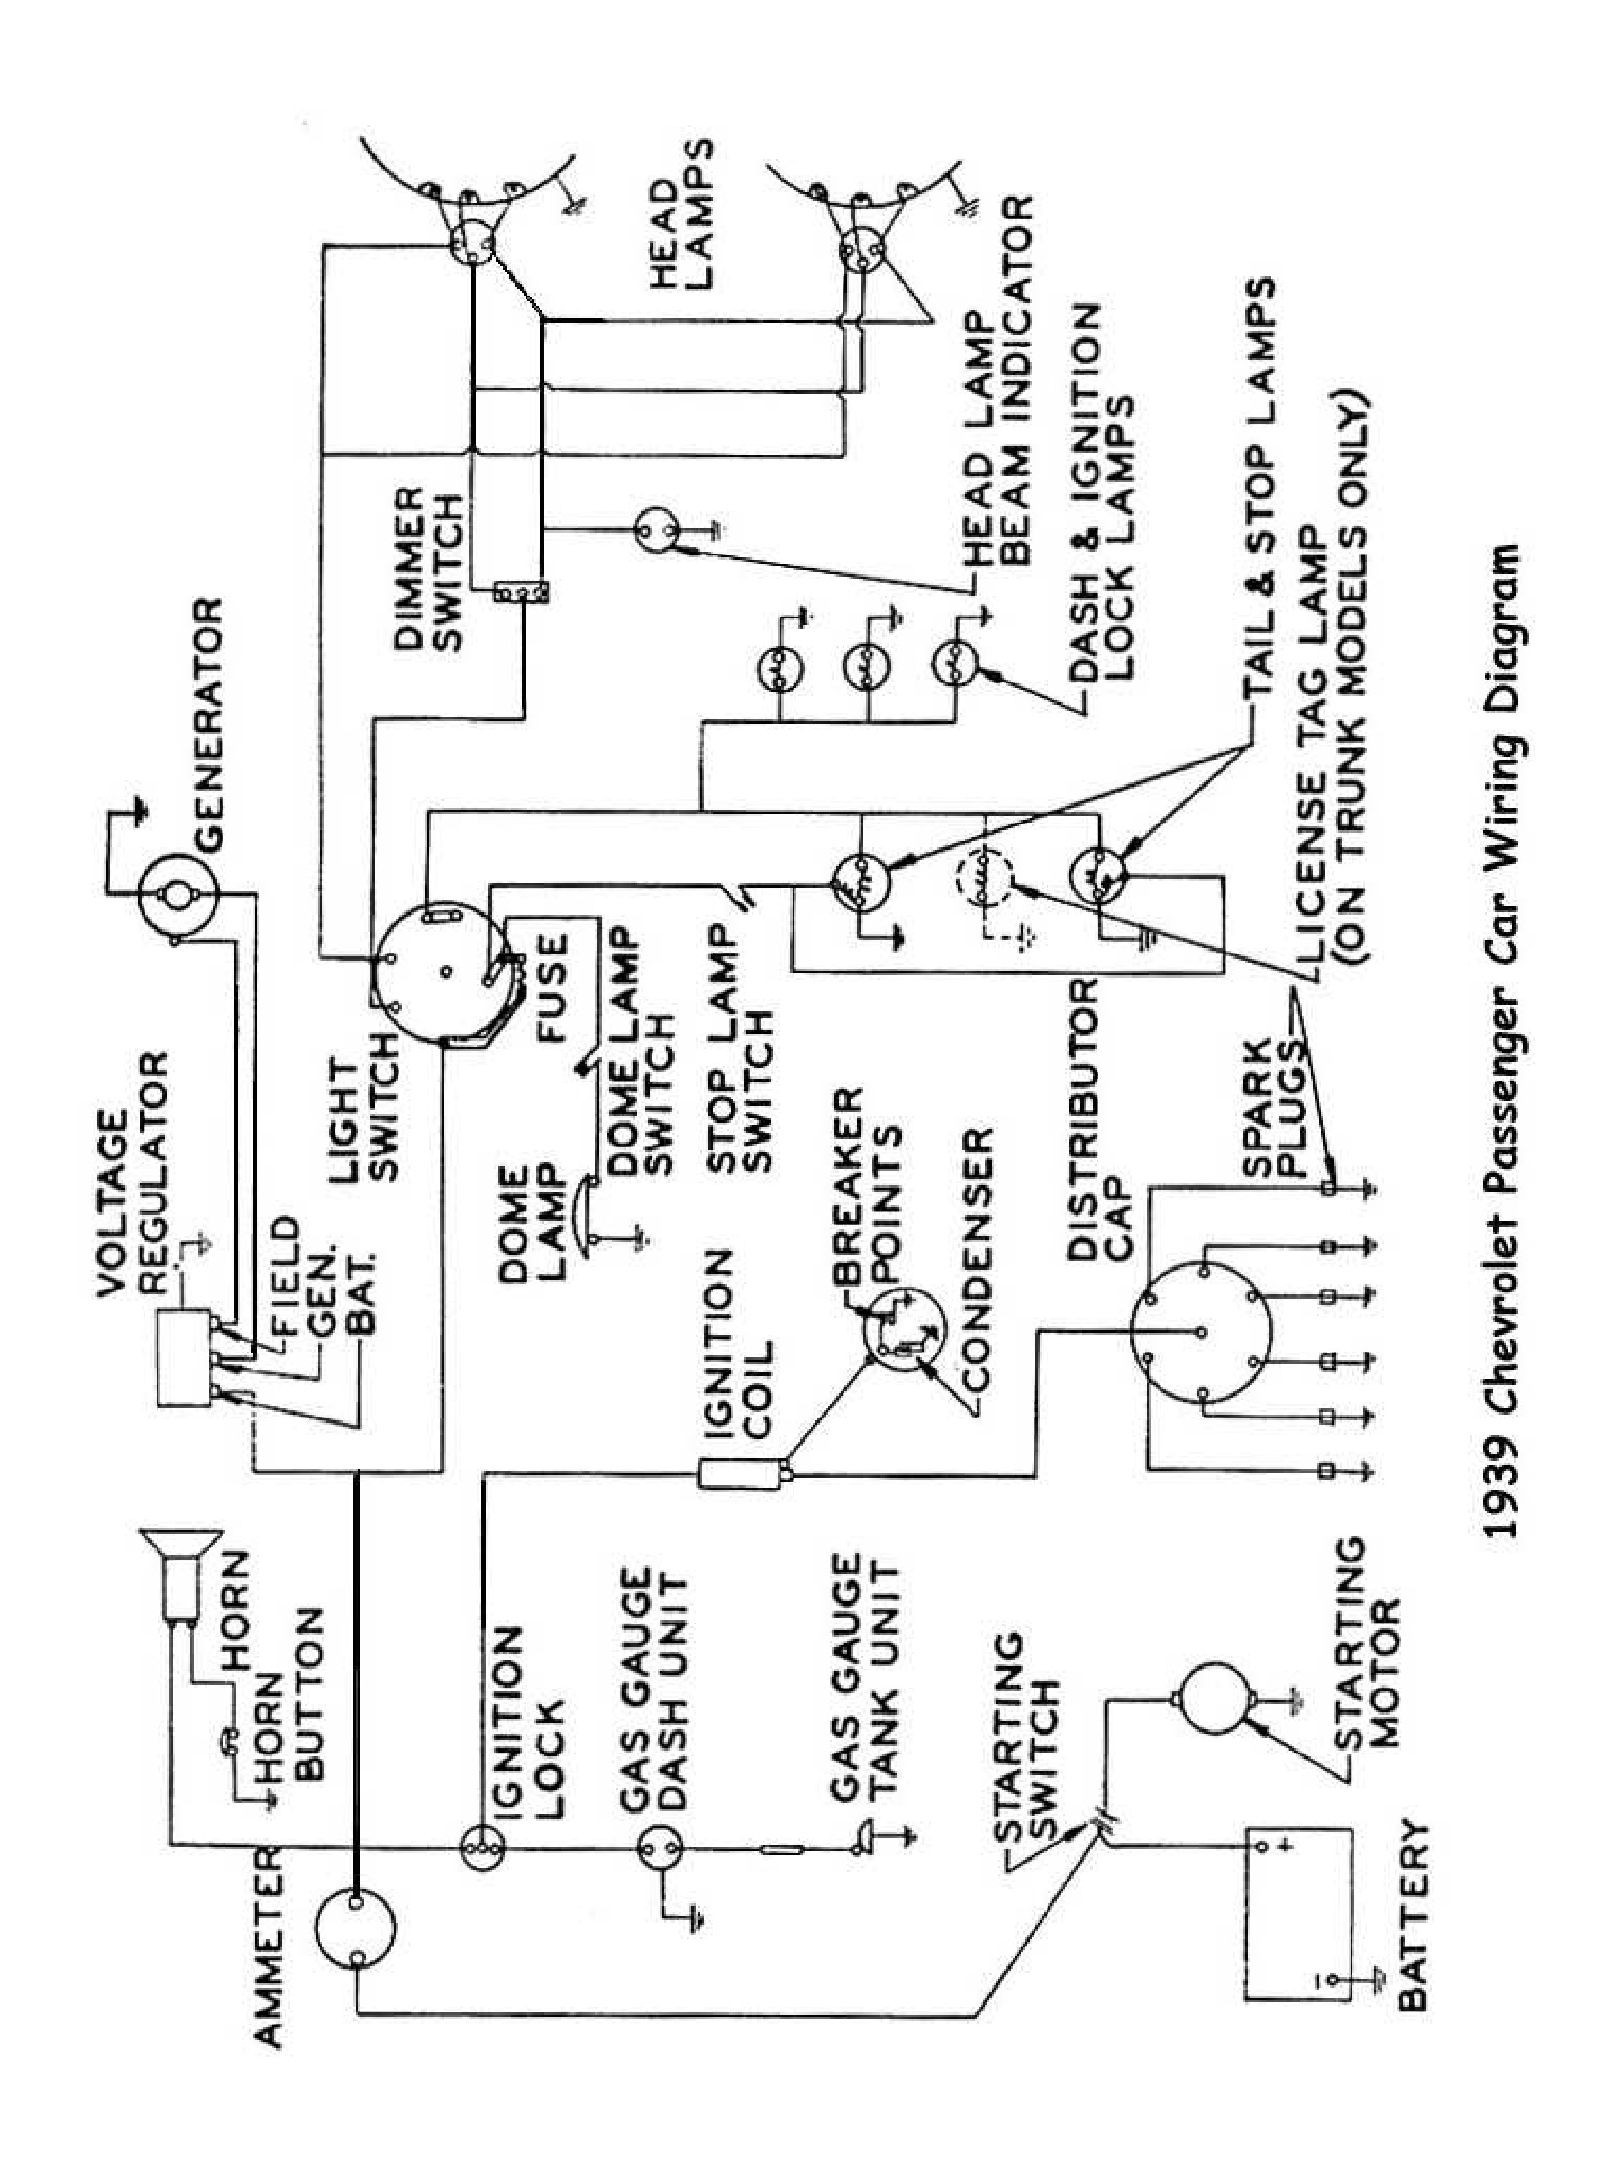 Fuel Gauge Wiring Diagram Chevy Unique